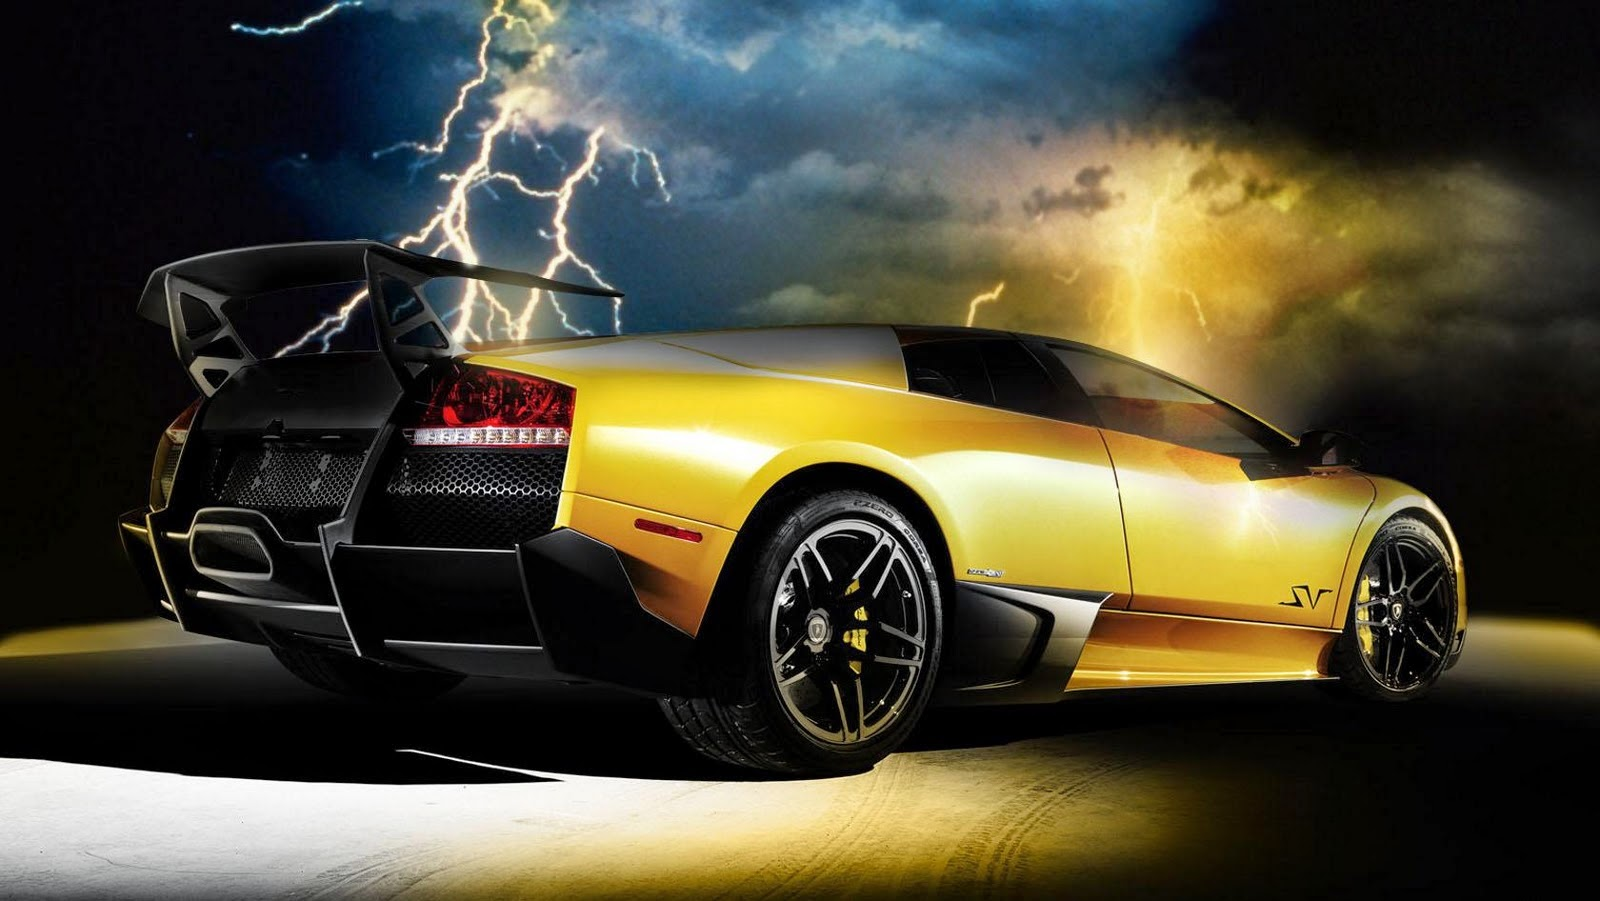 lamborghini murcielago wallpaper hd